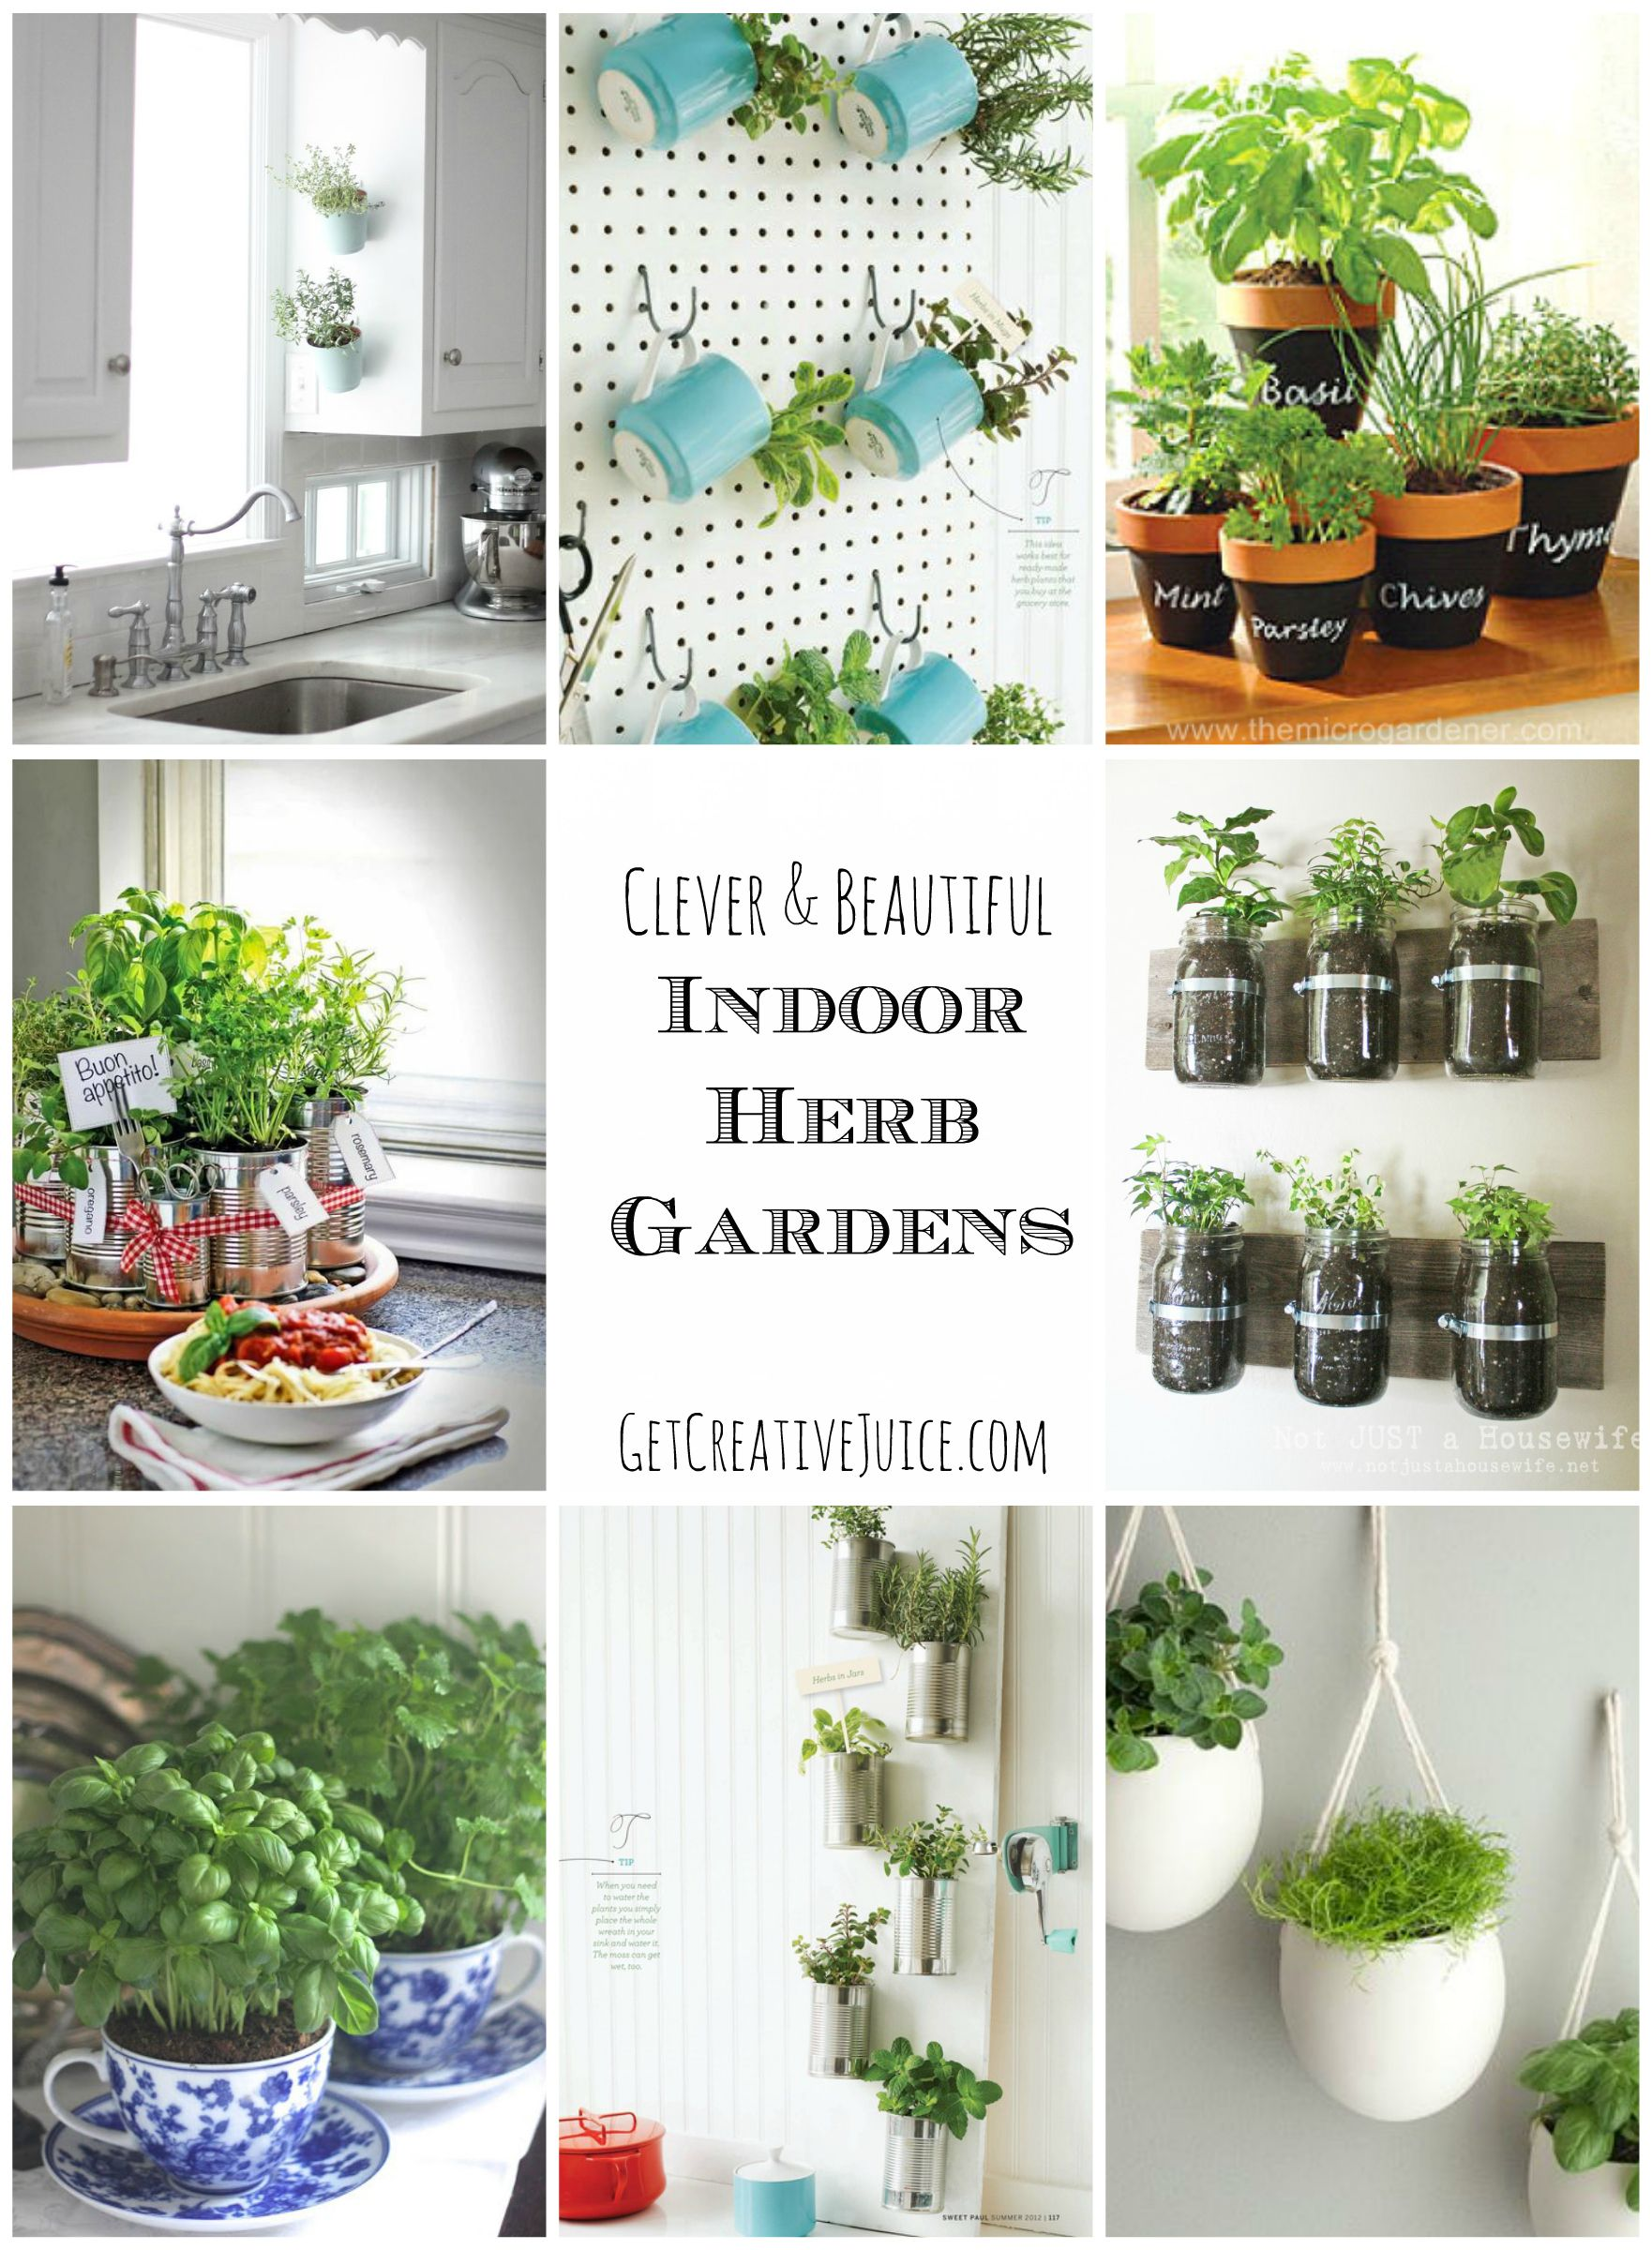 diy kitchen ideas Indoor Herb Garden Ideas creative beautiful and easy ideas for growing an herb